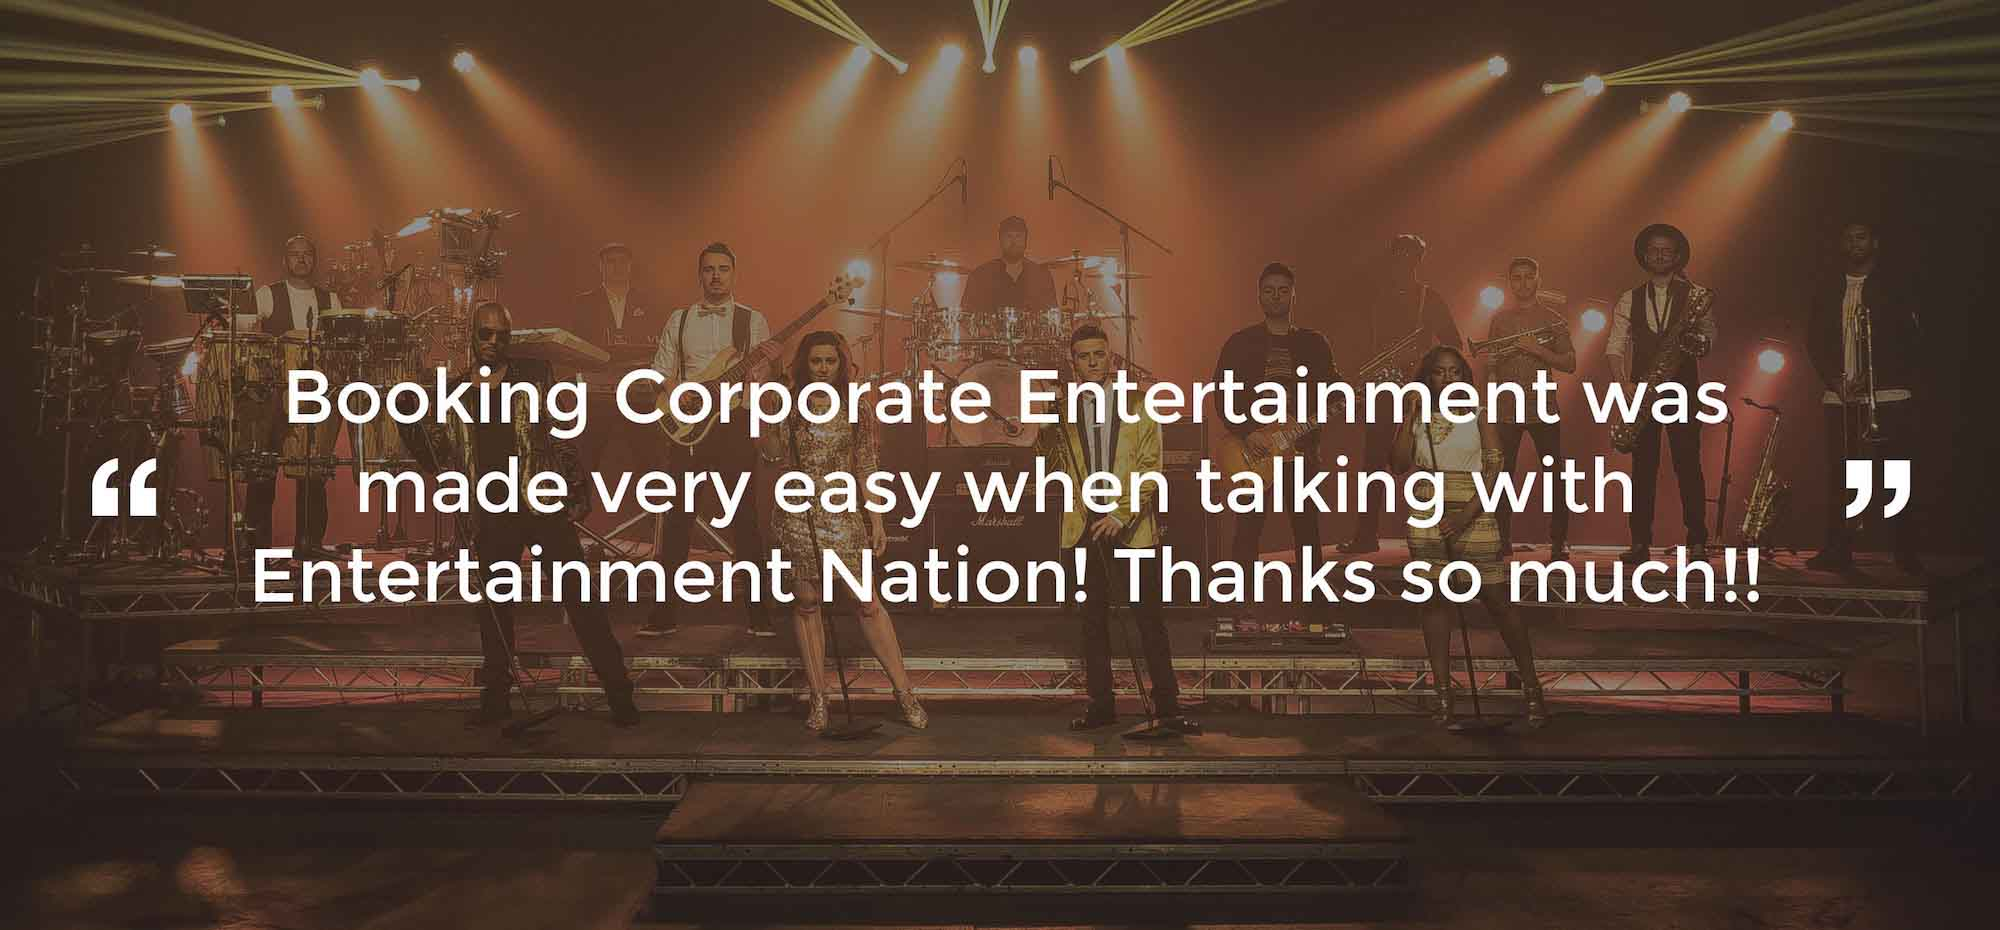 Review of Corporate Entertainment Leeds